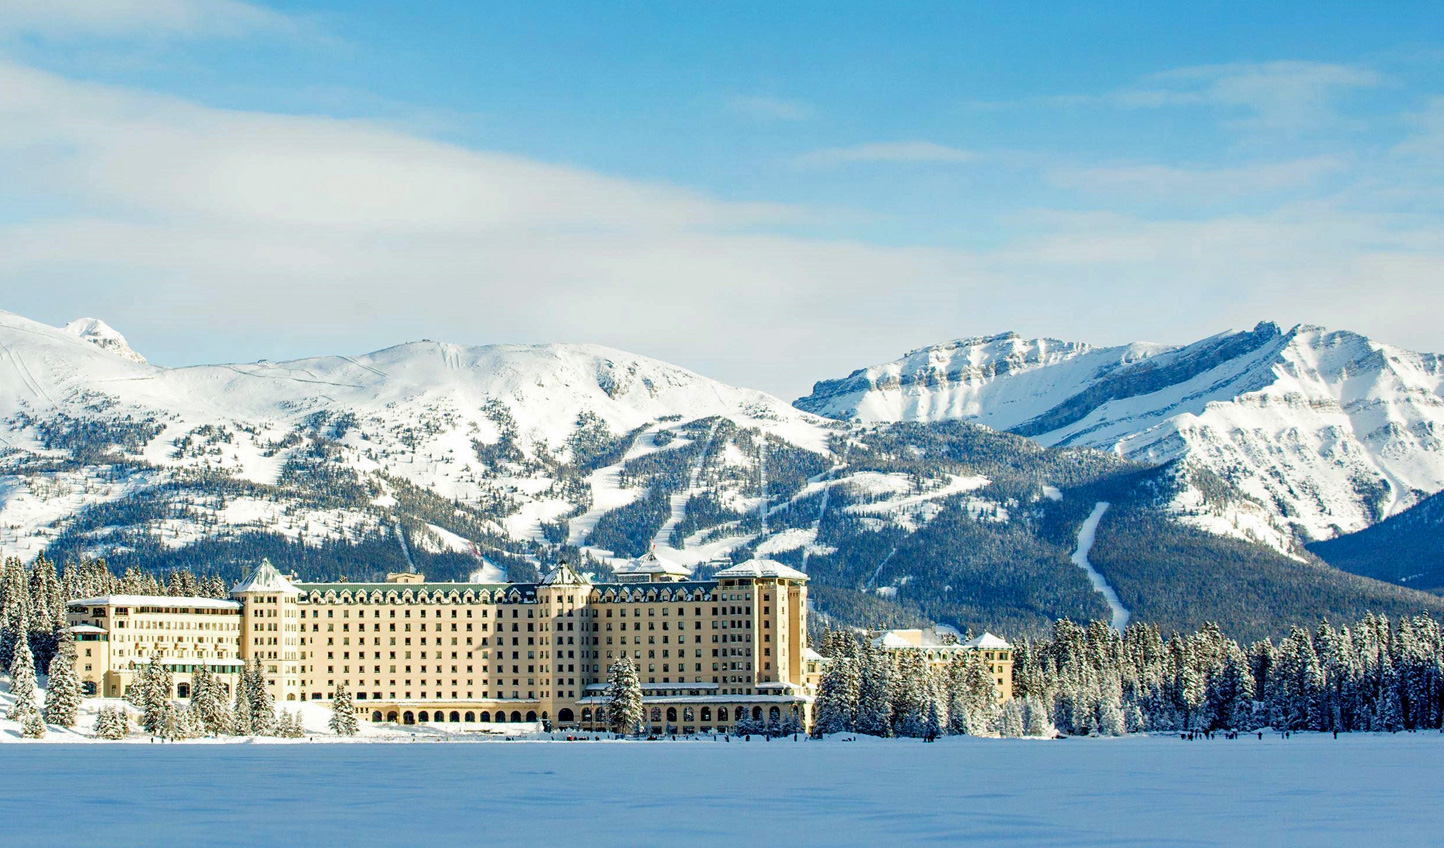 Come winter, the snow gives Fairmont Chateau Lake Louise an extra layer of magic